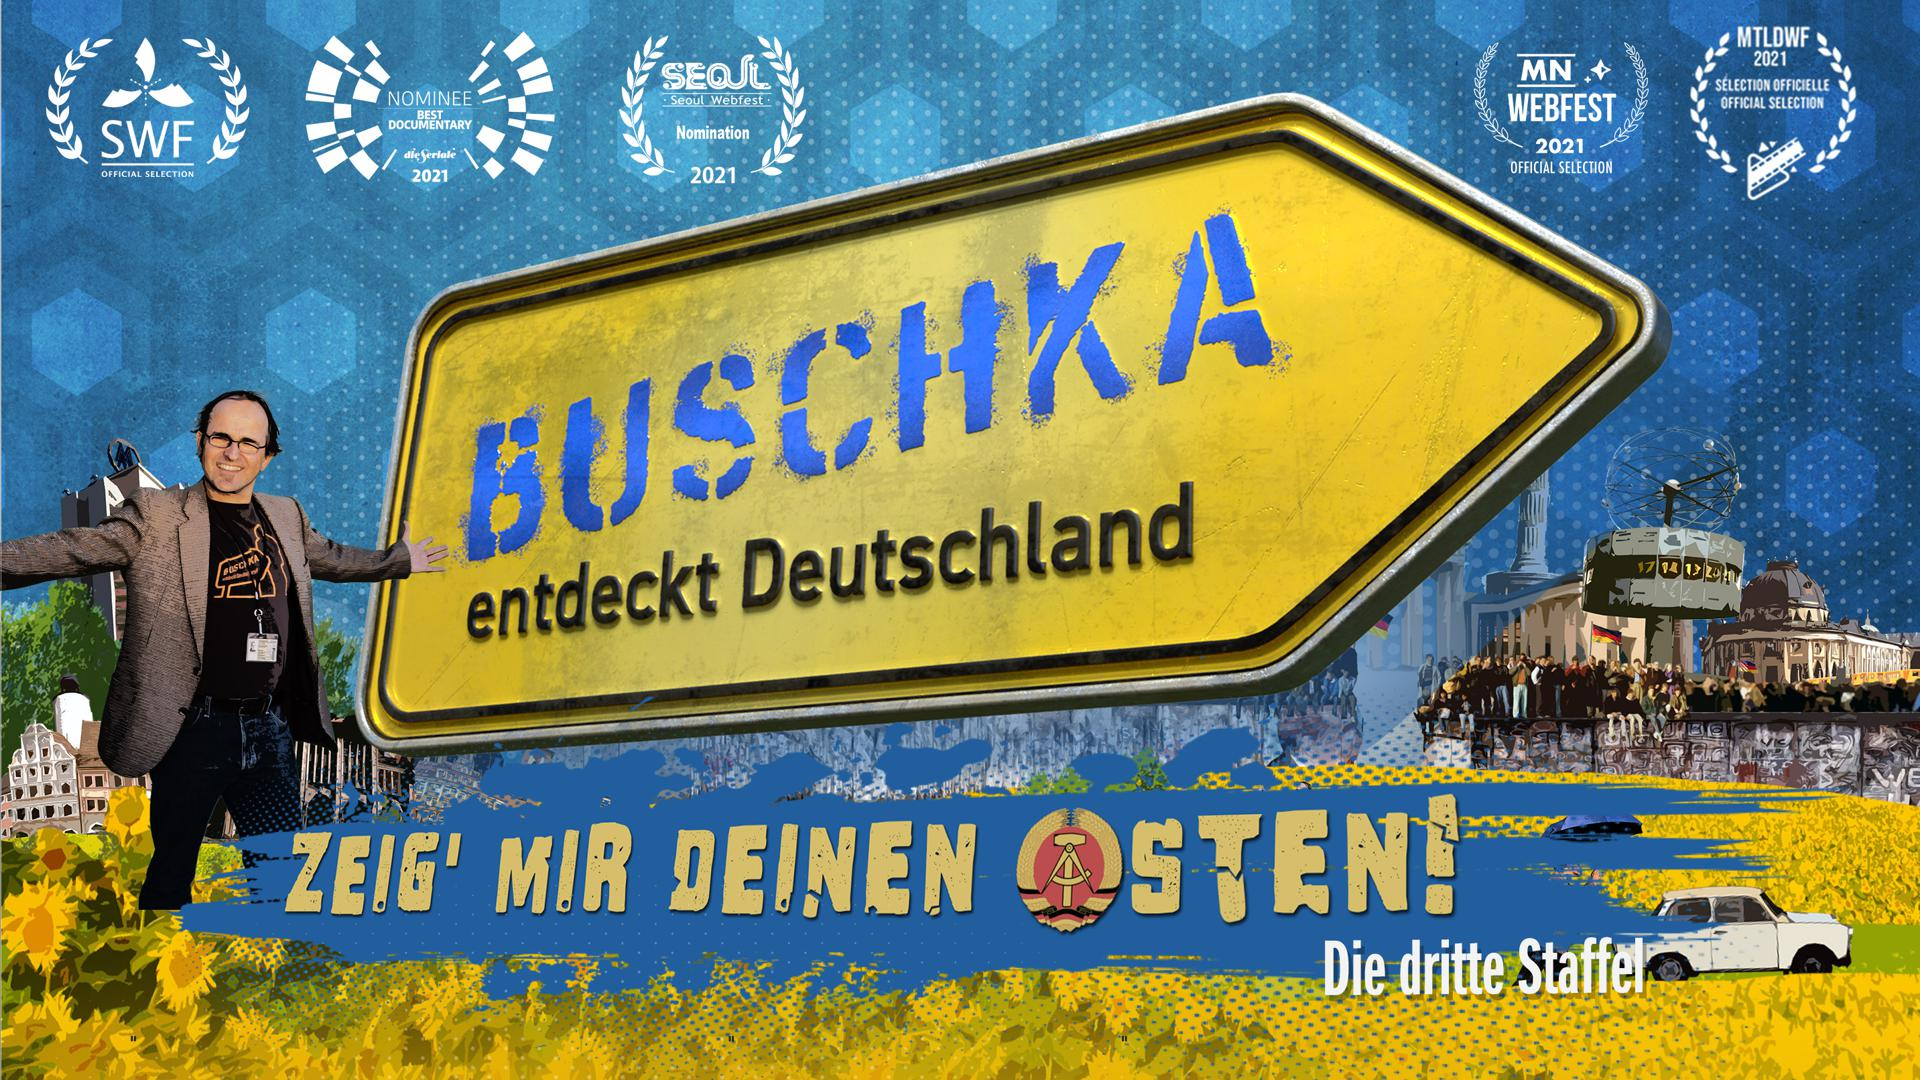 Buschka discovers Germany - Show Me Your East Side! (S03/E04 feat. former GDR civil rights activist Heiko Lietz, Schwerin)